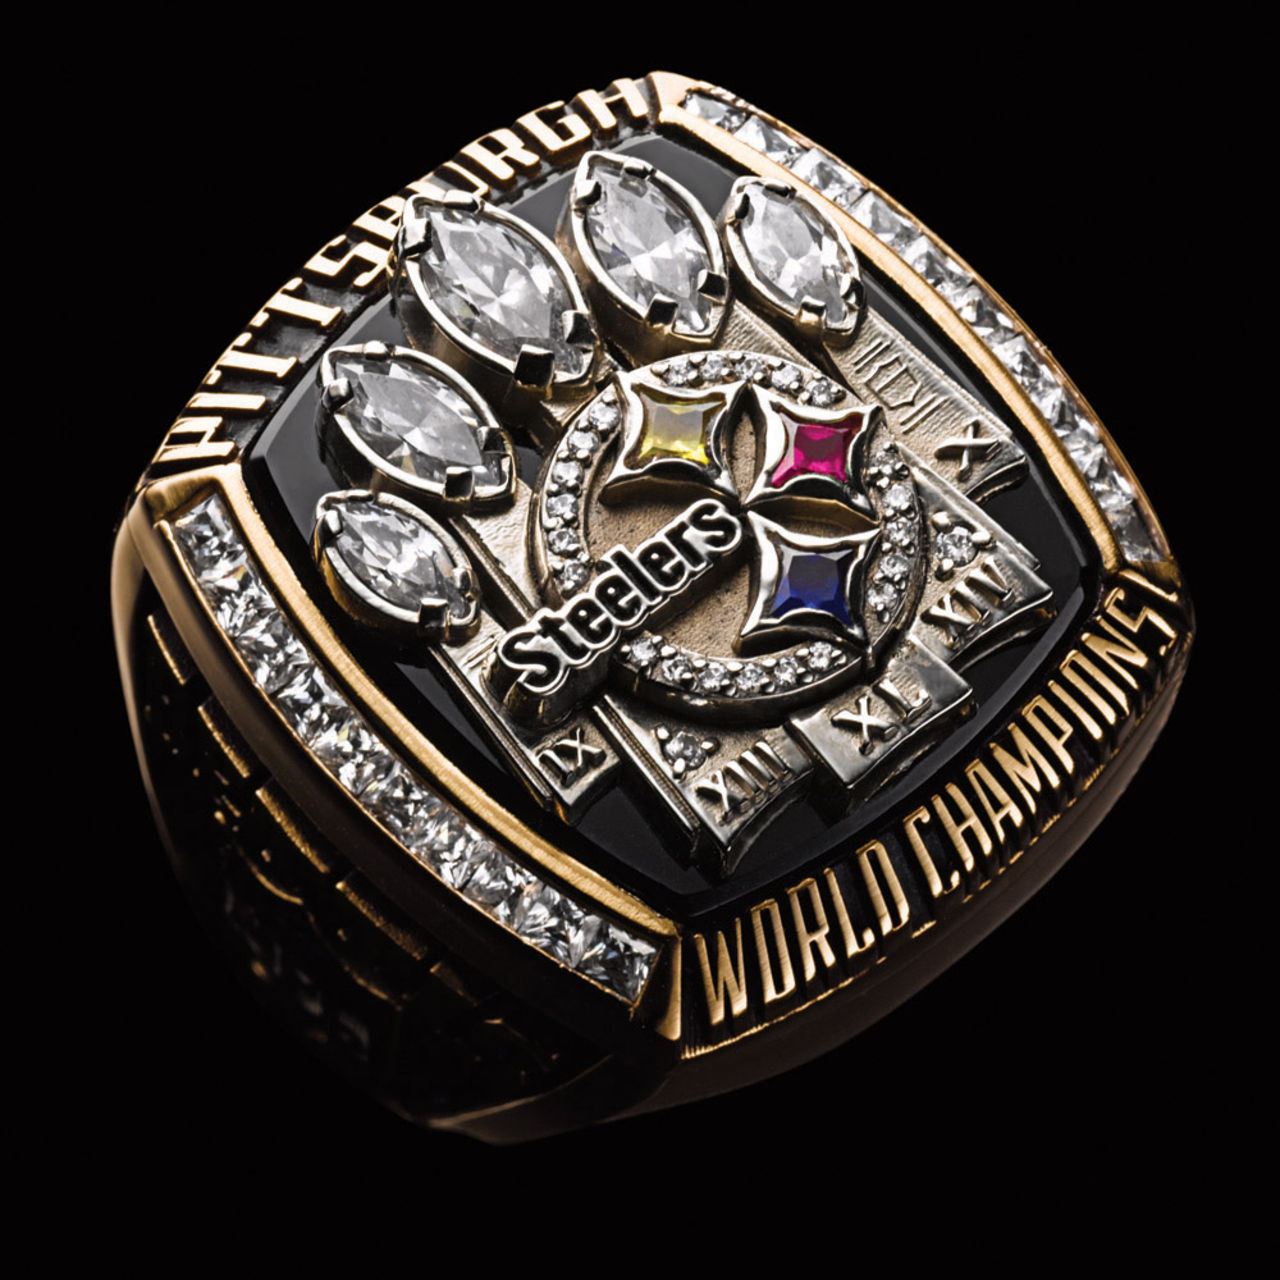 big broncos bowl super rings really ceremony receive in cj private ring anderson nfl